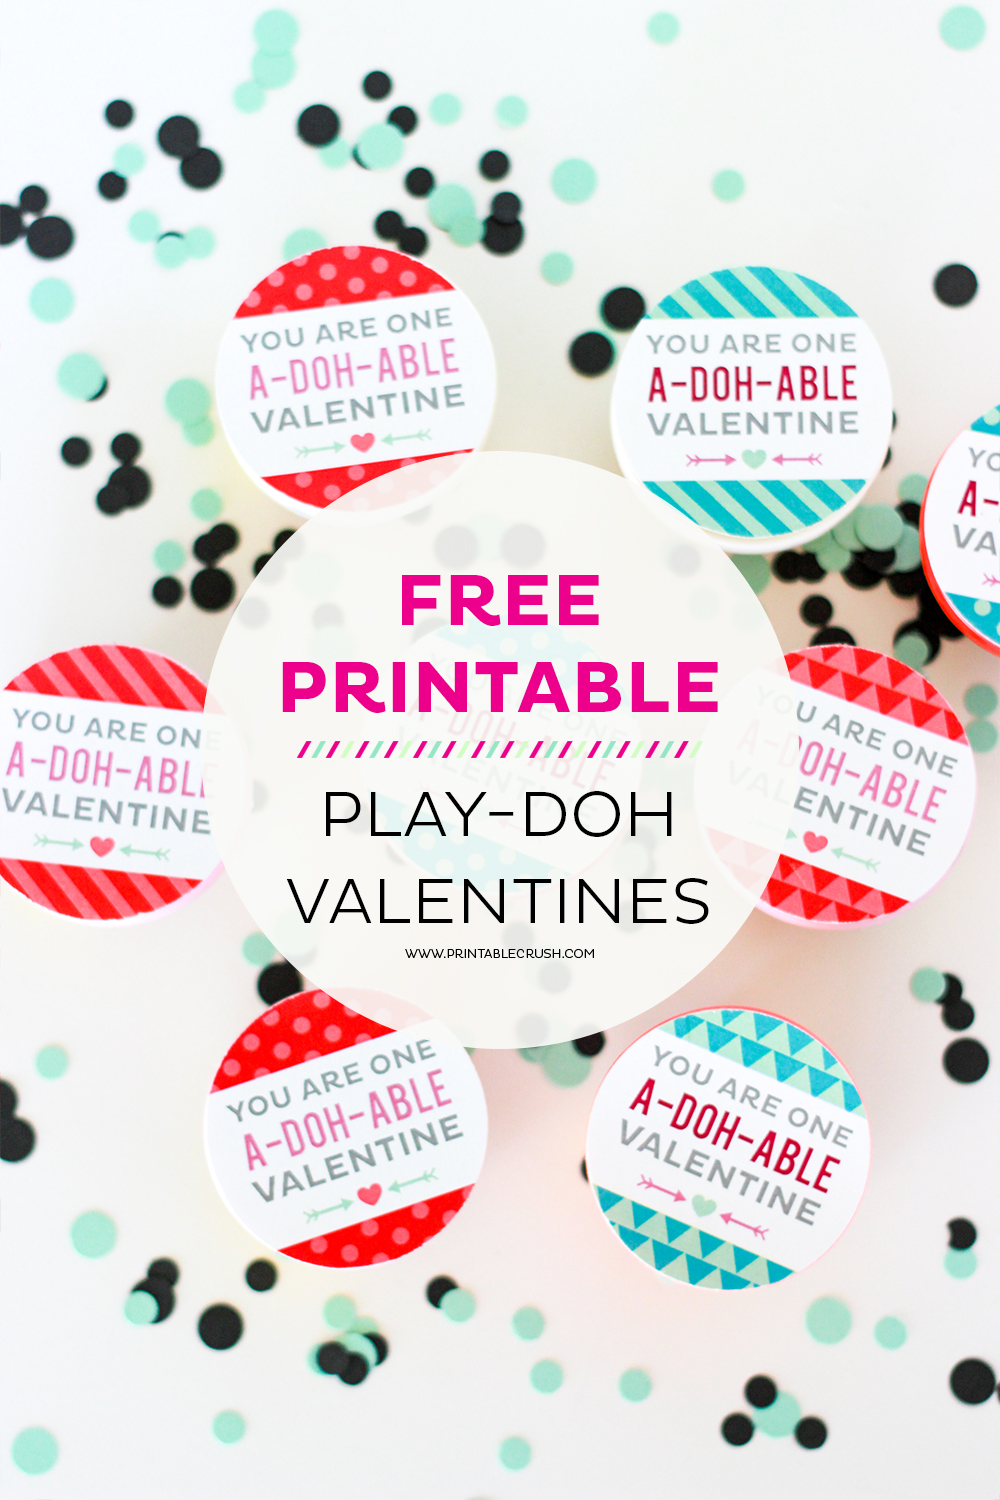 photo about Play Doh Valentine Printable called Lovely and Cost-free Engage in-doh Valentine Printables - Printable